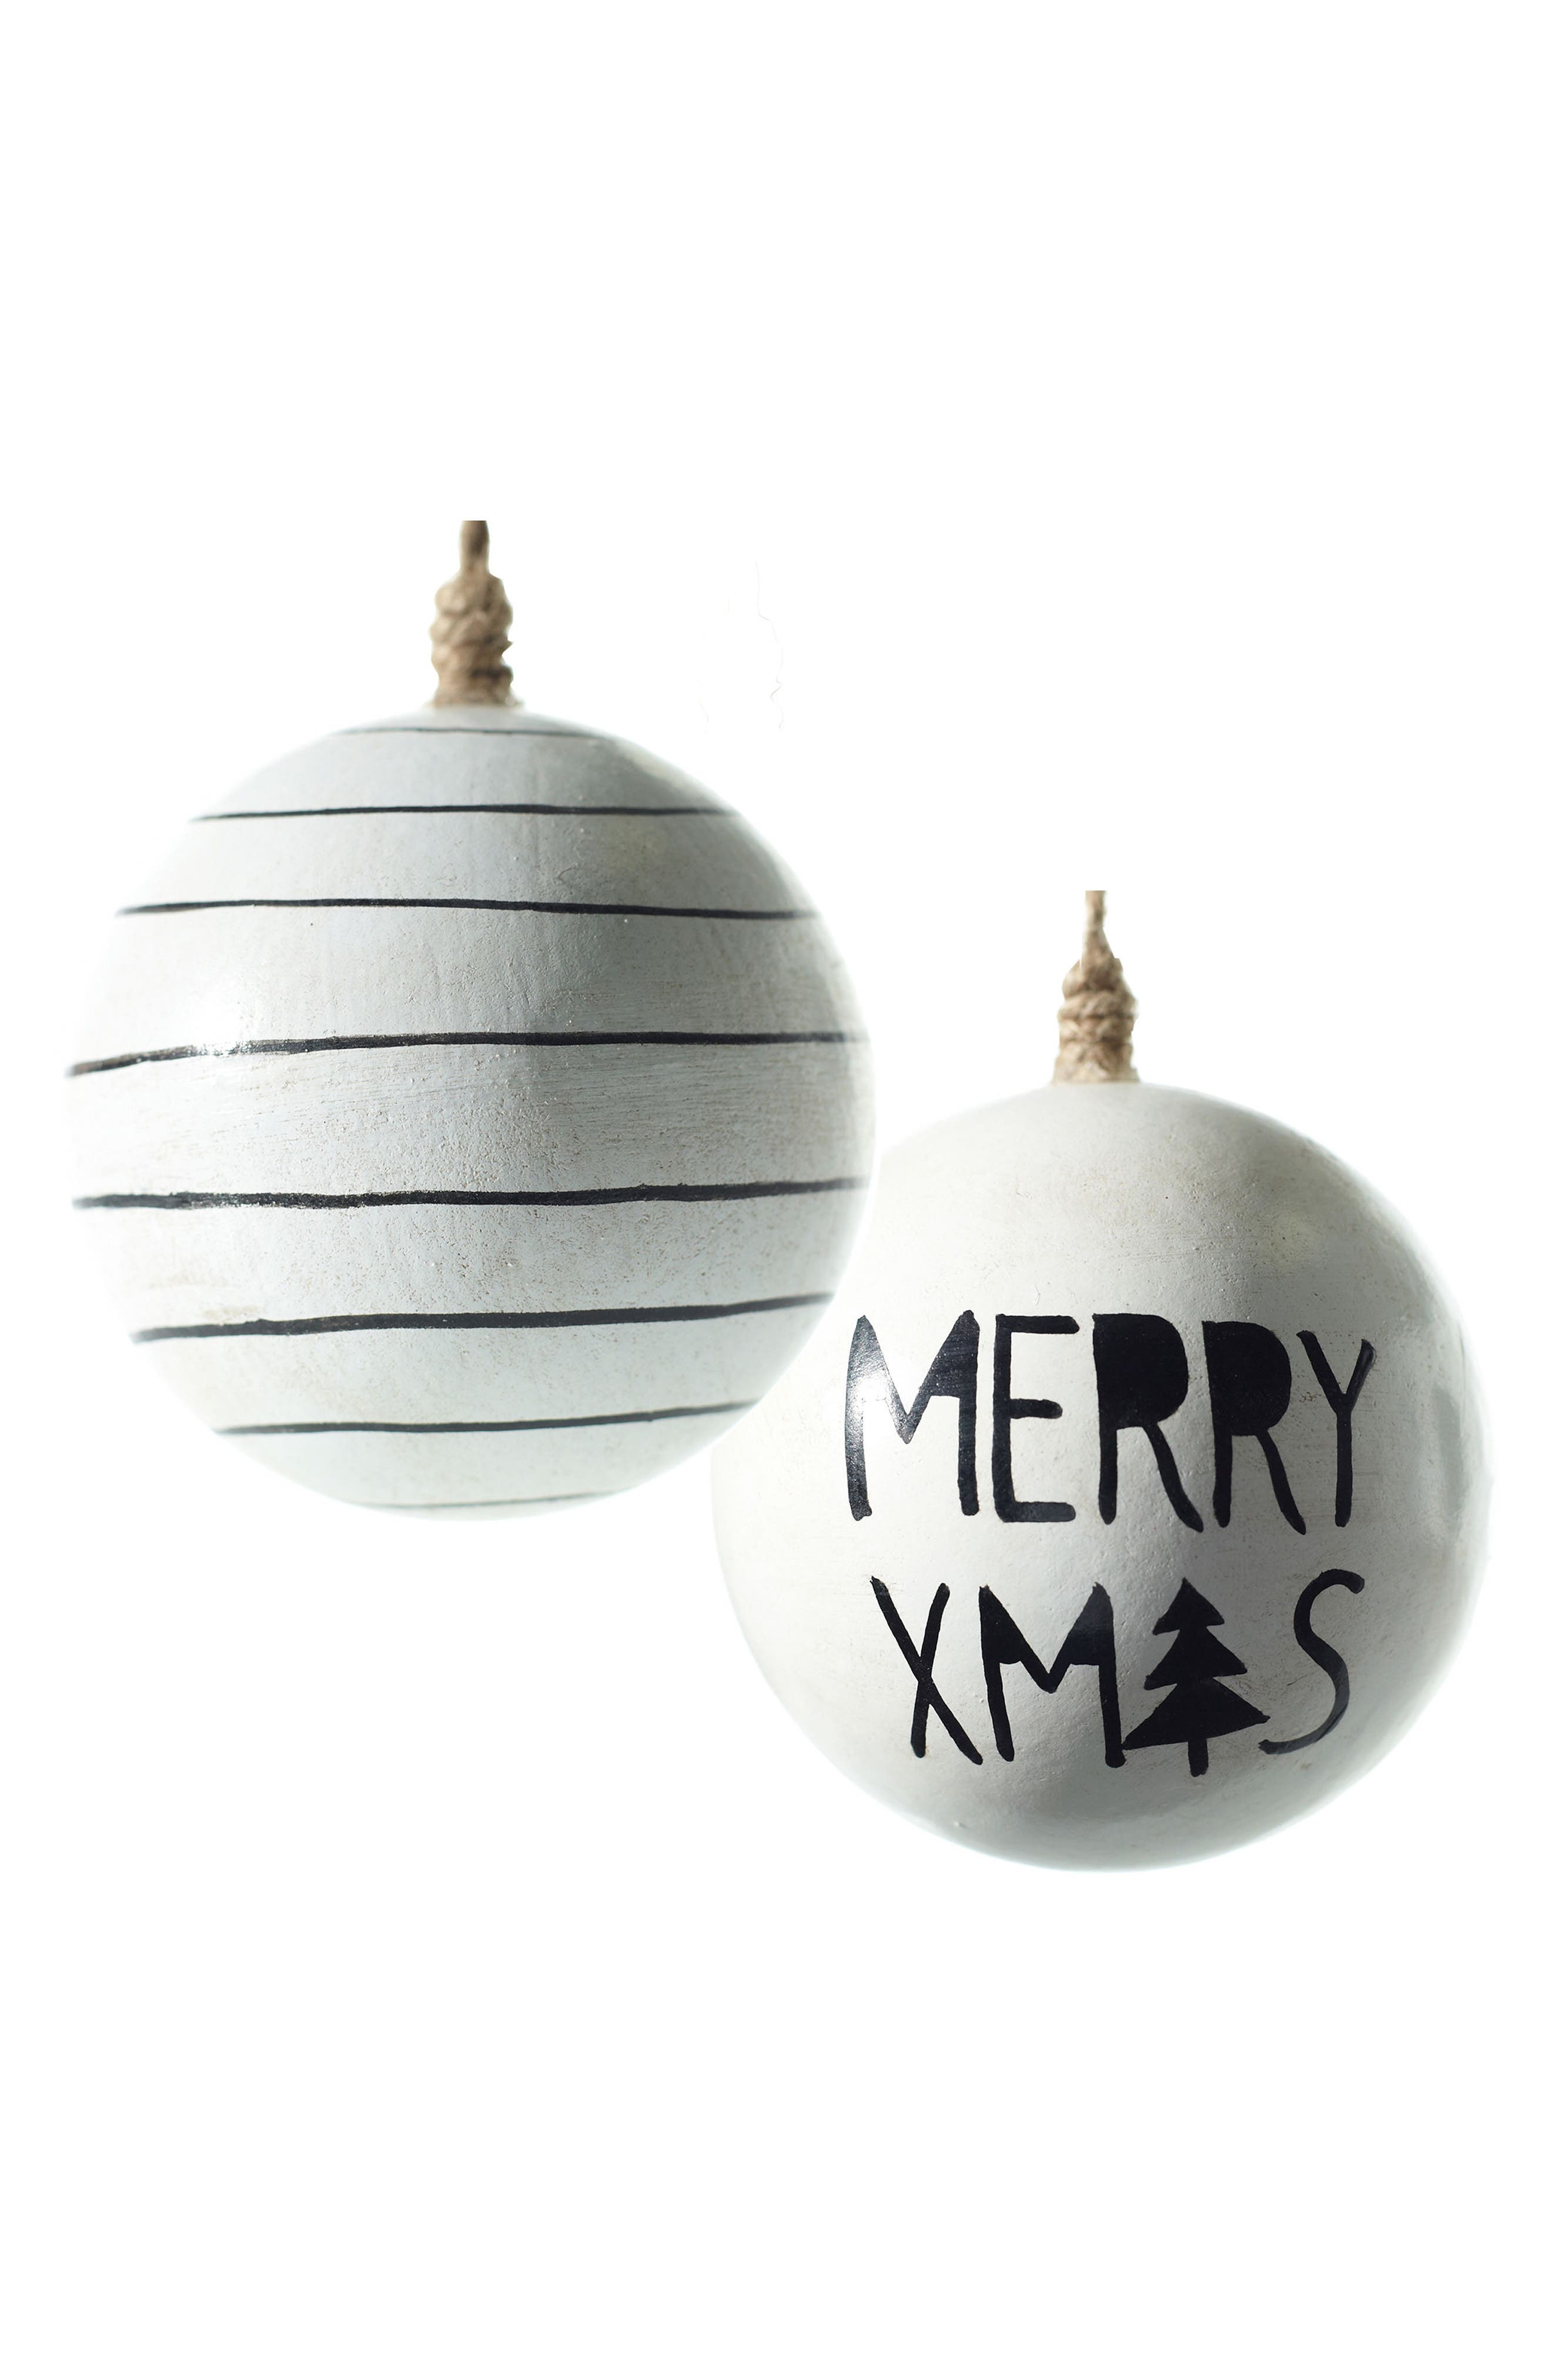 Merry Xmas Set of 2 Wooden Ball Ornaments,                         Main,                         color, White